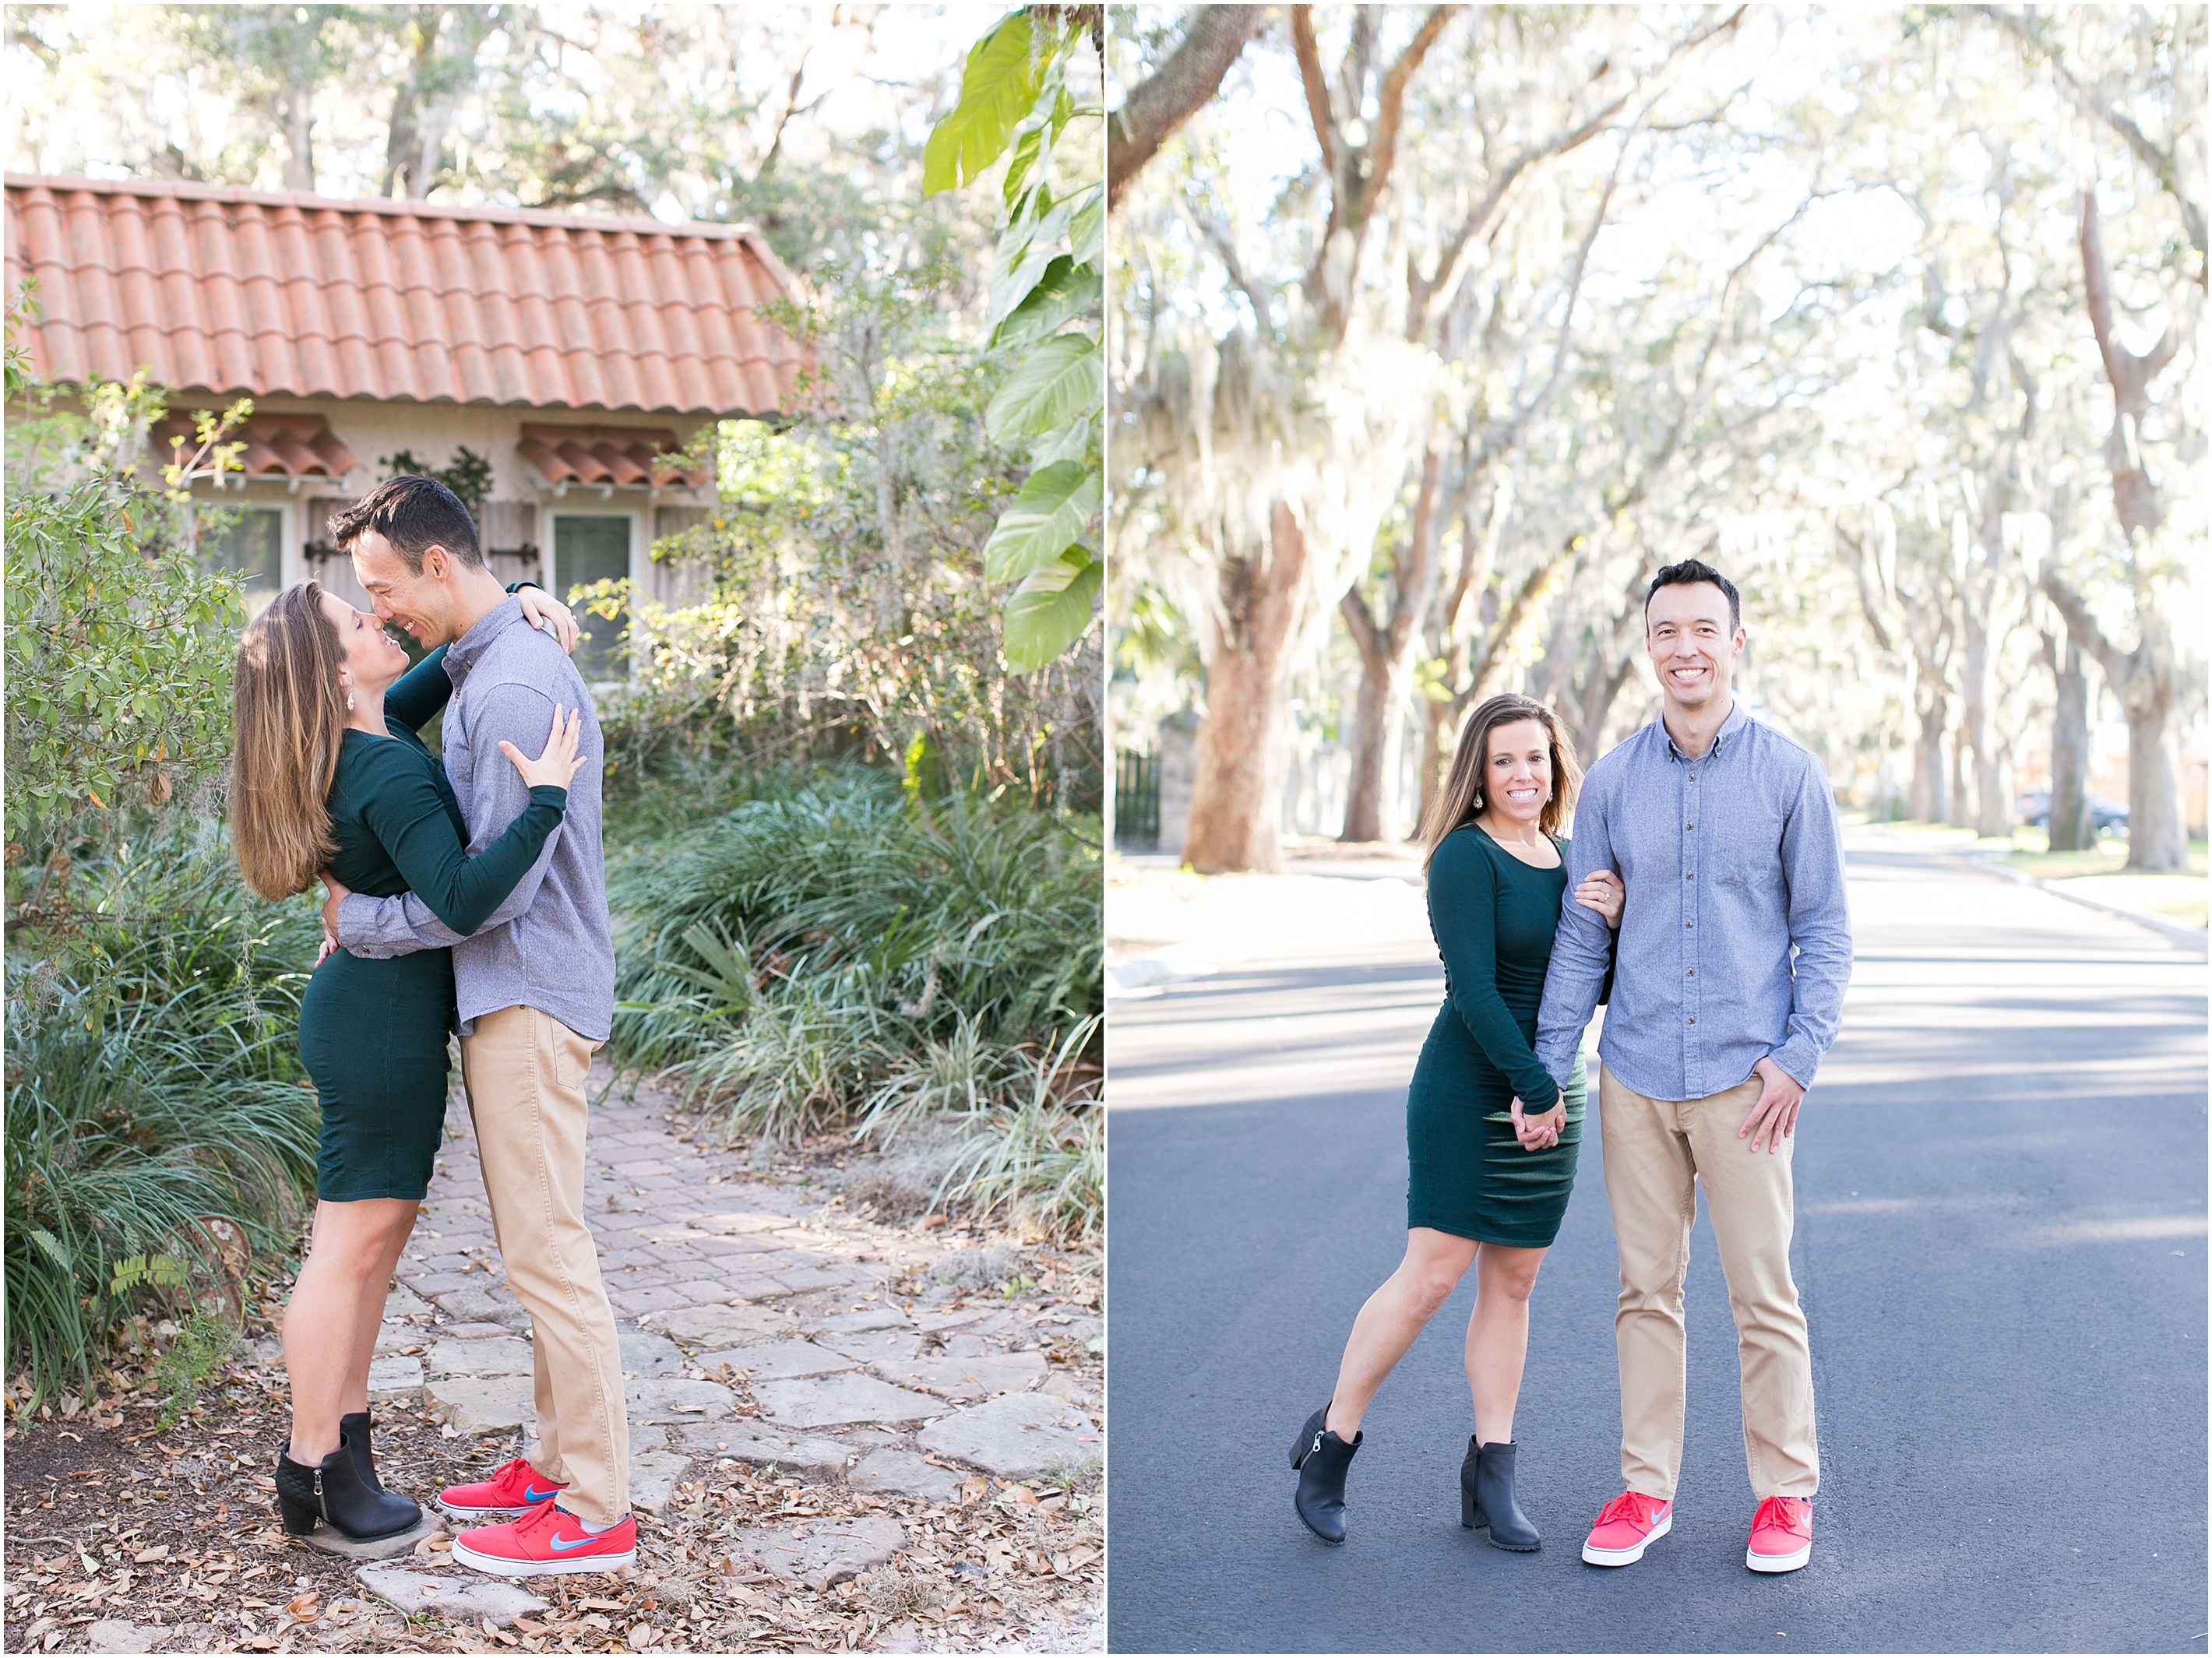 va_jessica_ryan_photography_st_augustine_florida_destination_engagement_photography_0114